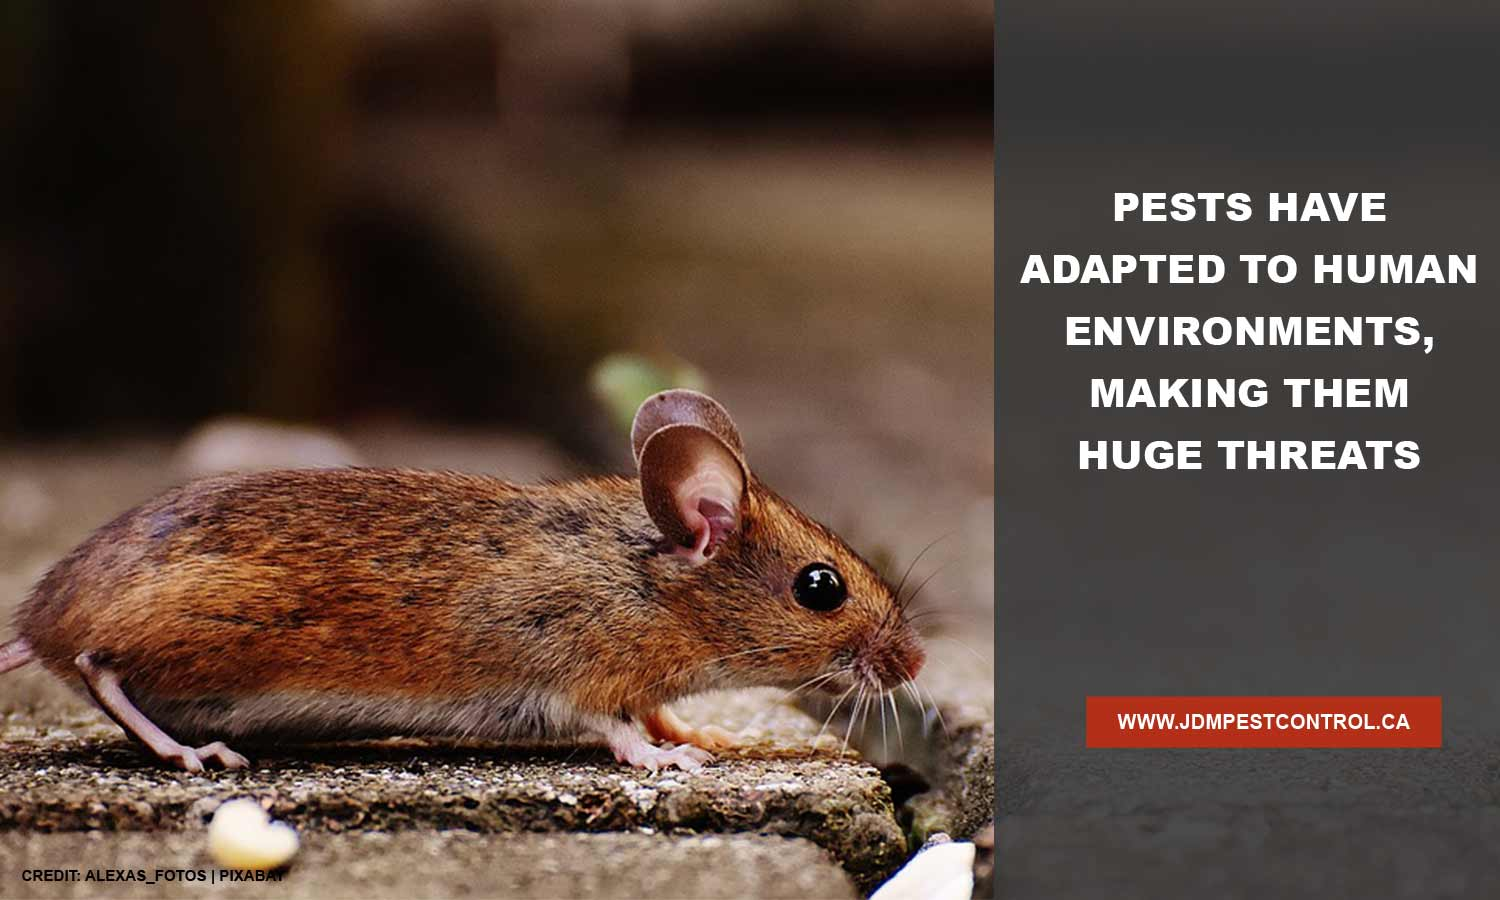 Pests have adapted to human environments, making them huge threats